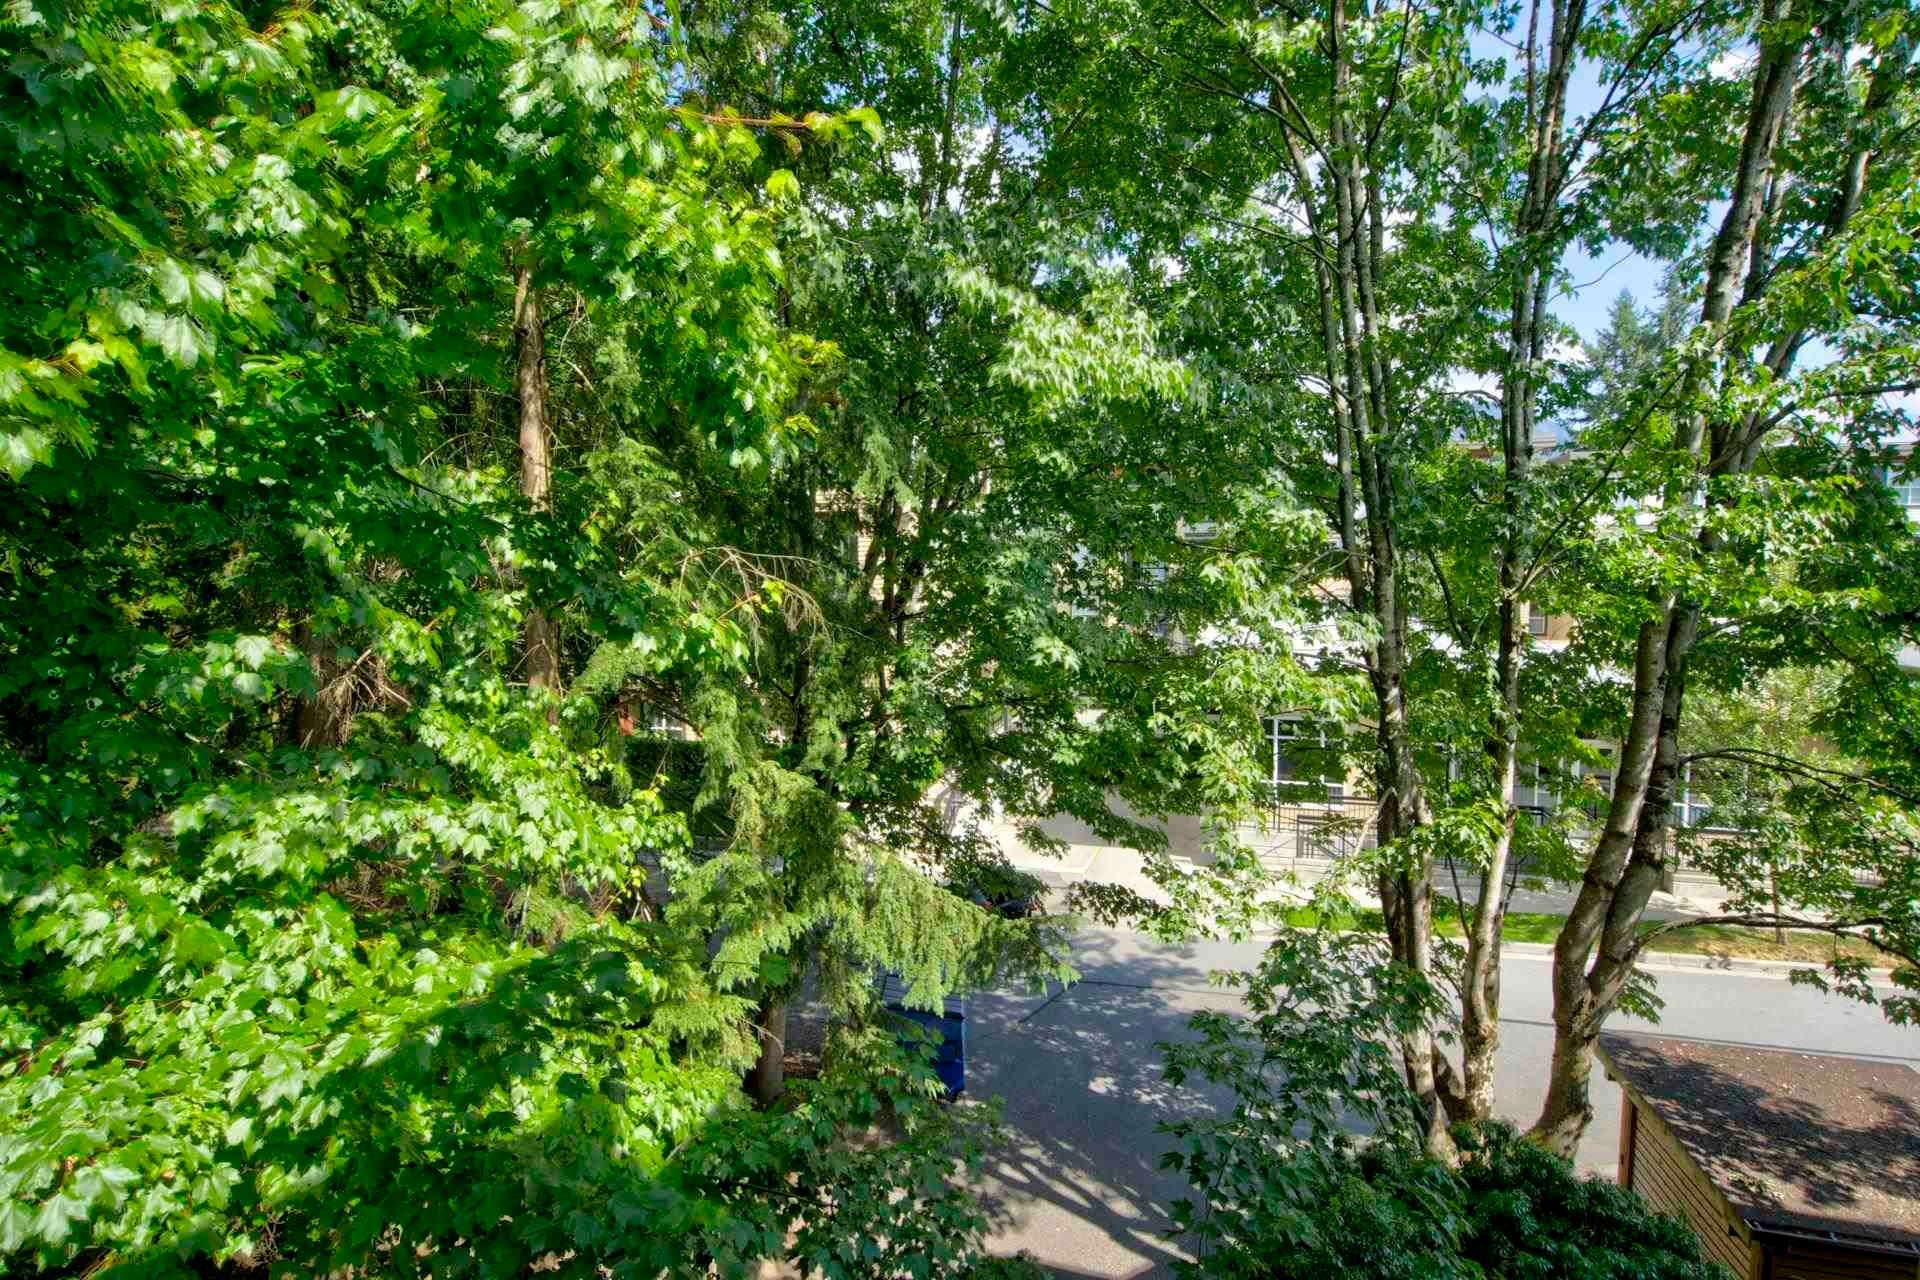 301 3187 MOUNTAIN HIGHWAY - Lynn Valley Apartment/Condo for sale, 2 Bedrooms (R2603681) - #21